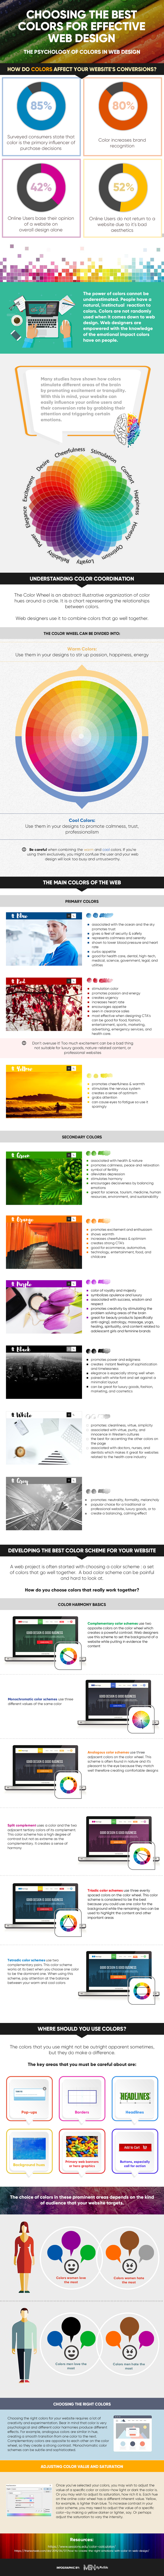 The Psychology of Color on Website Design Infographic